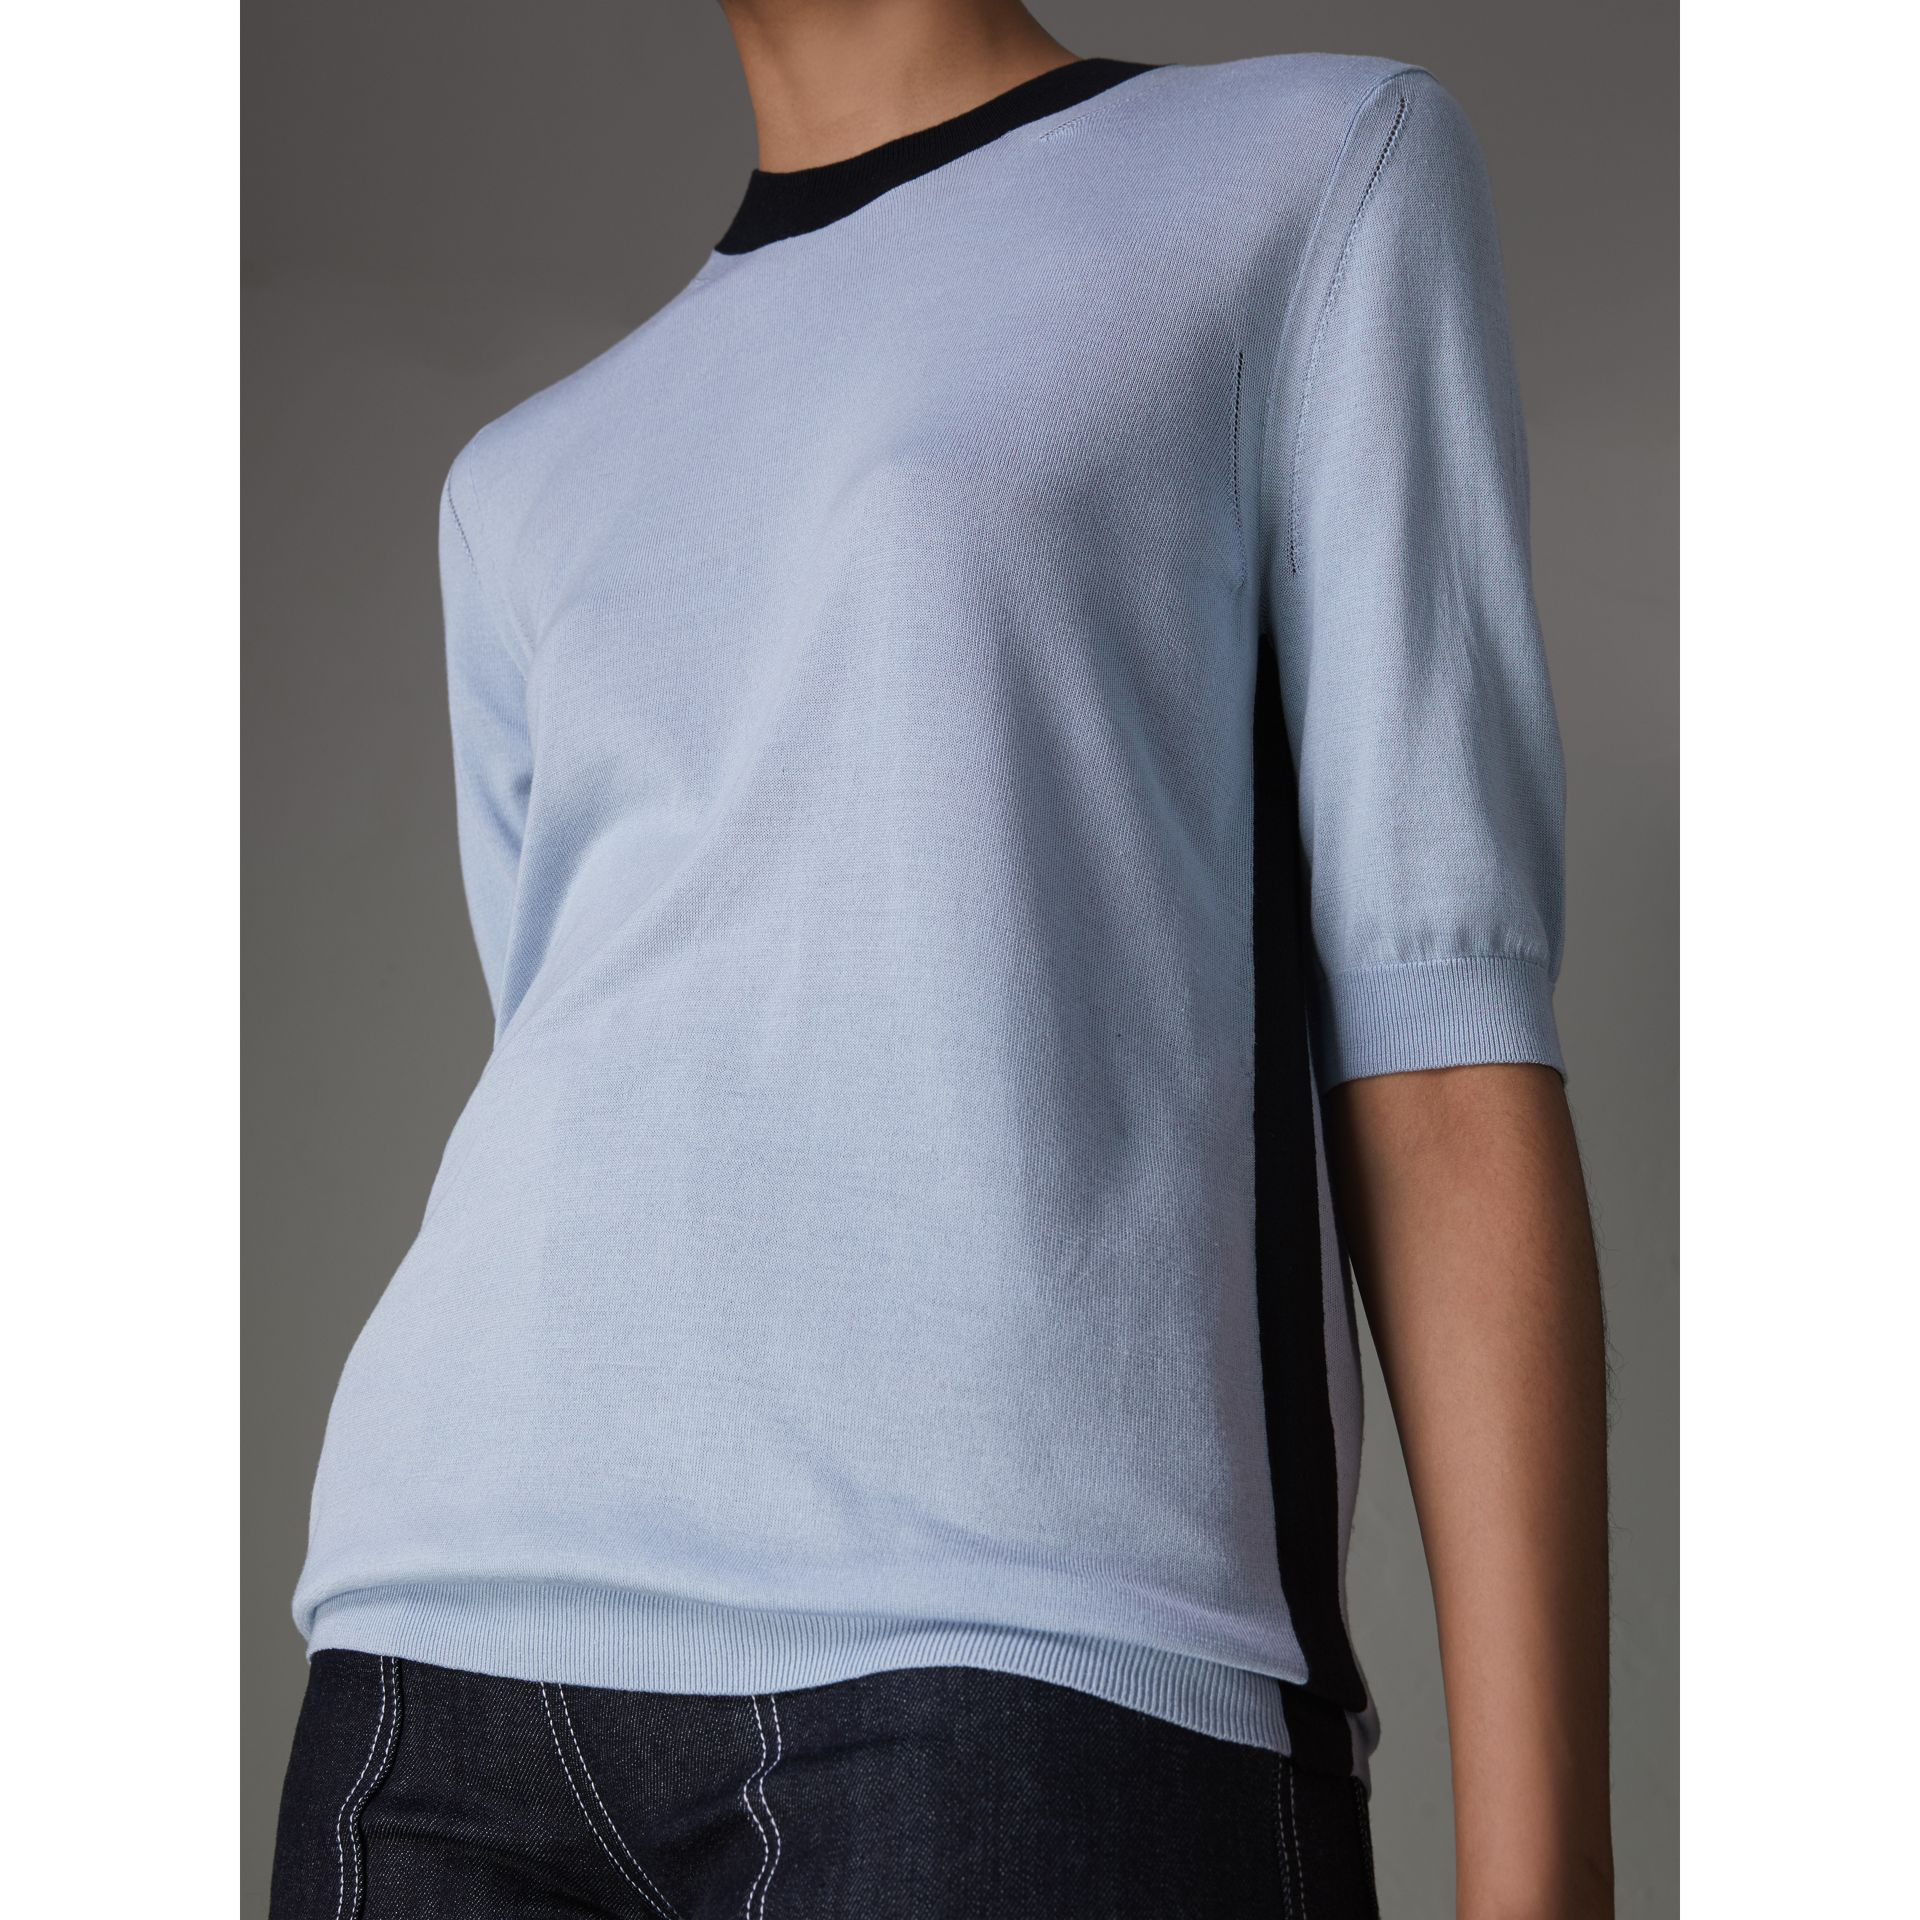 Silk Cashmere T-shirt in Sky Blue - Women | Burberry - gallery image 1